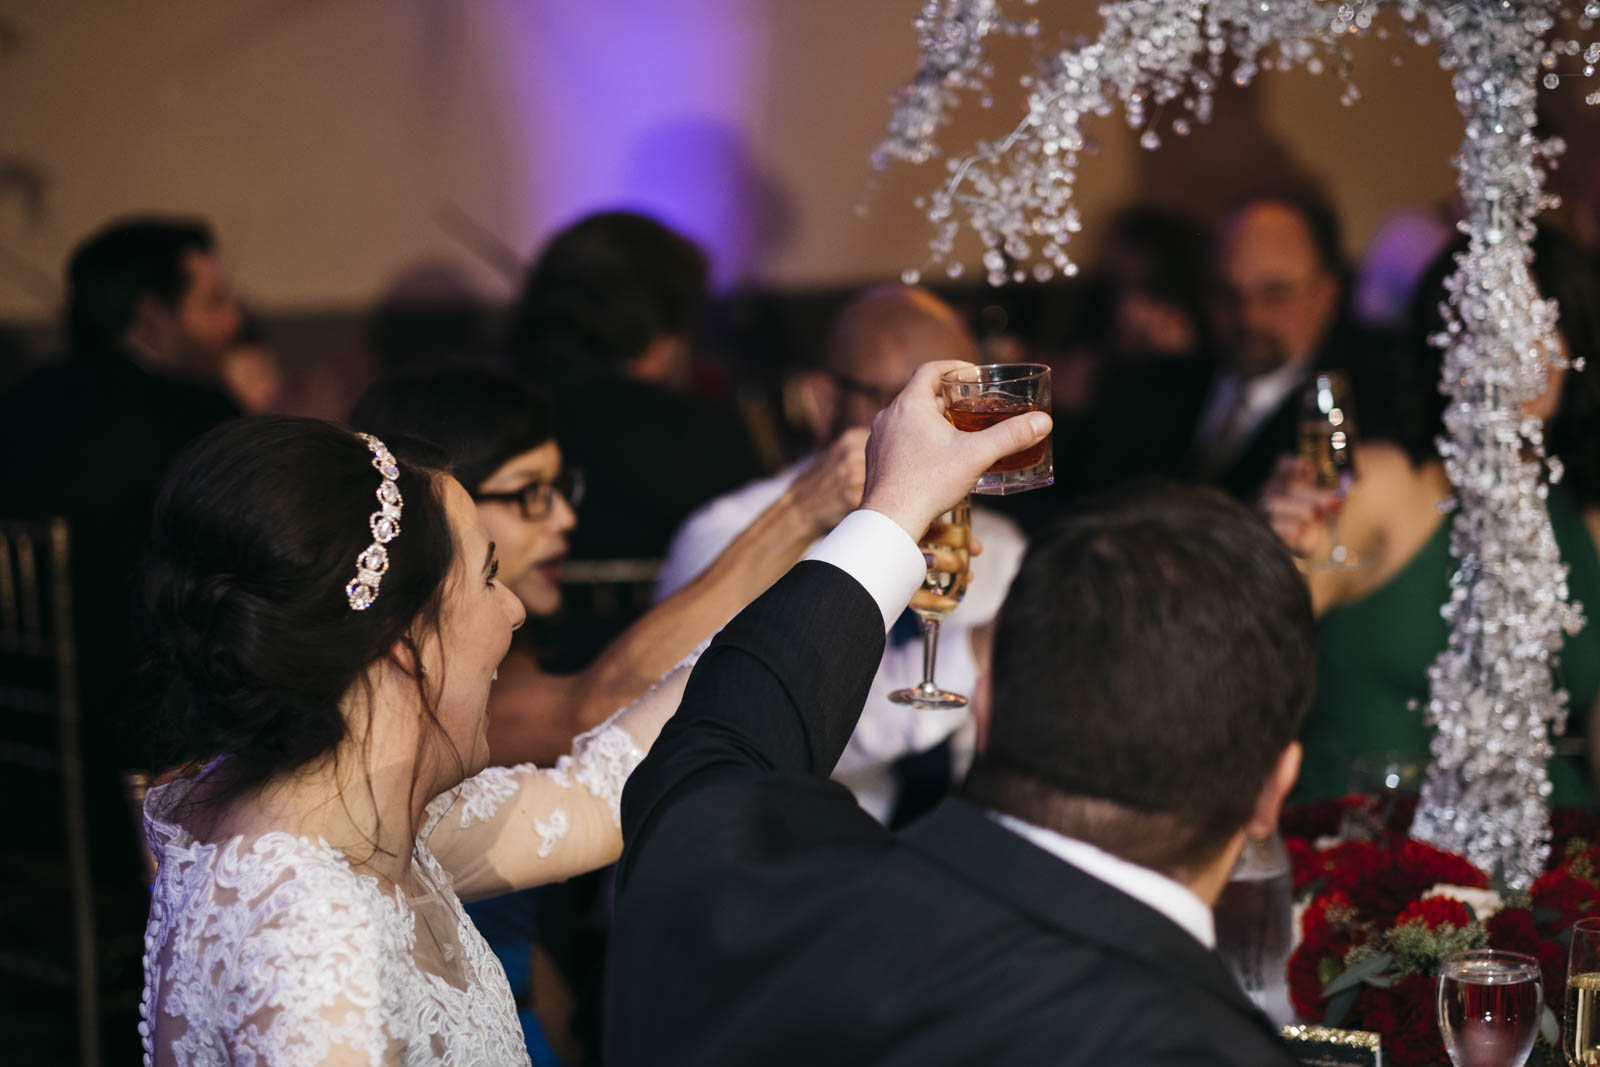 Bride and groom toast at wedding reception.